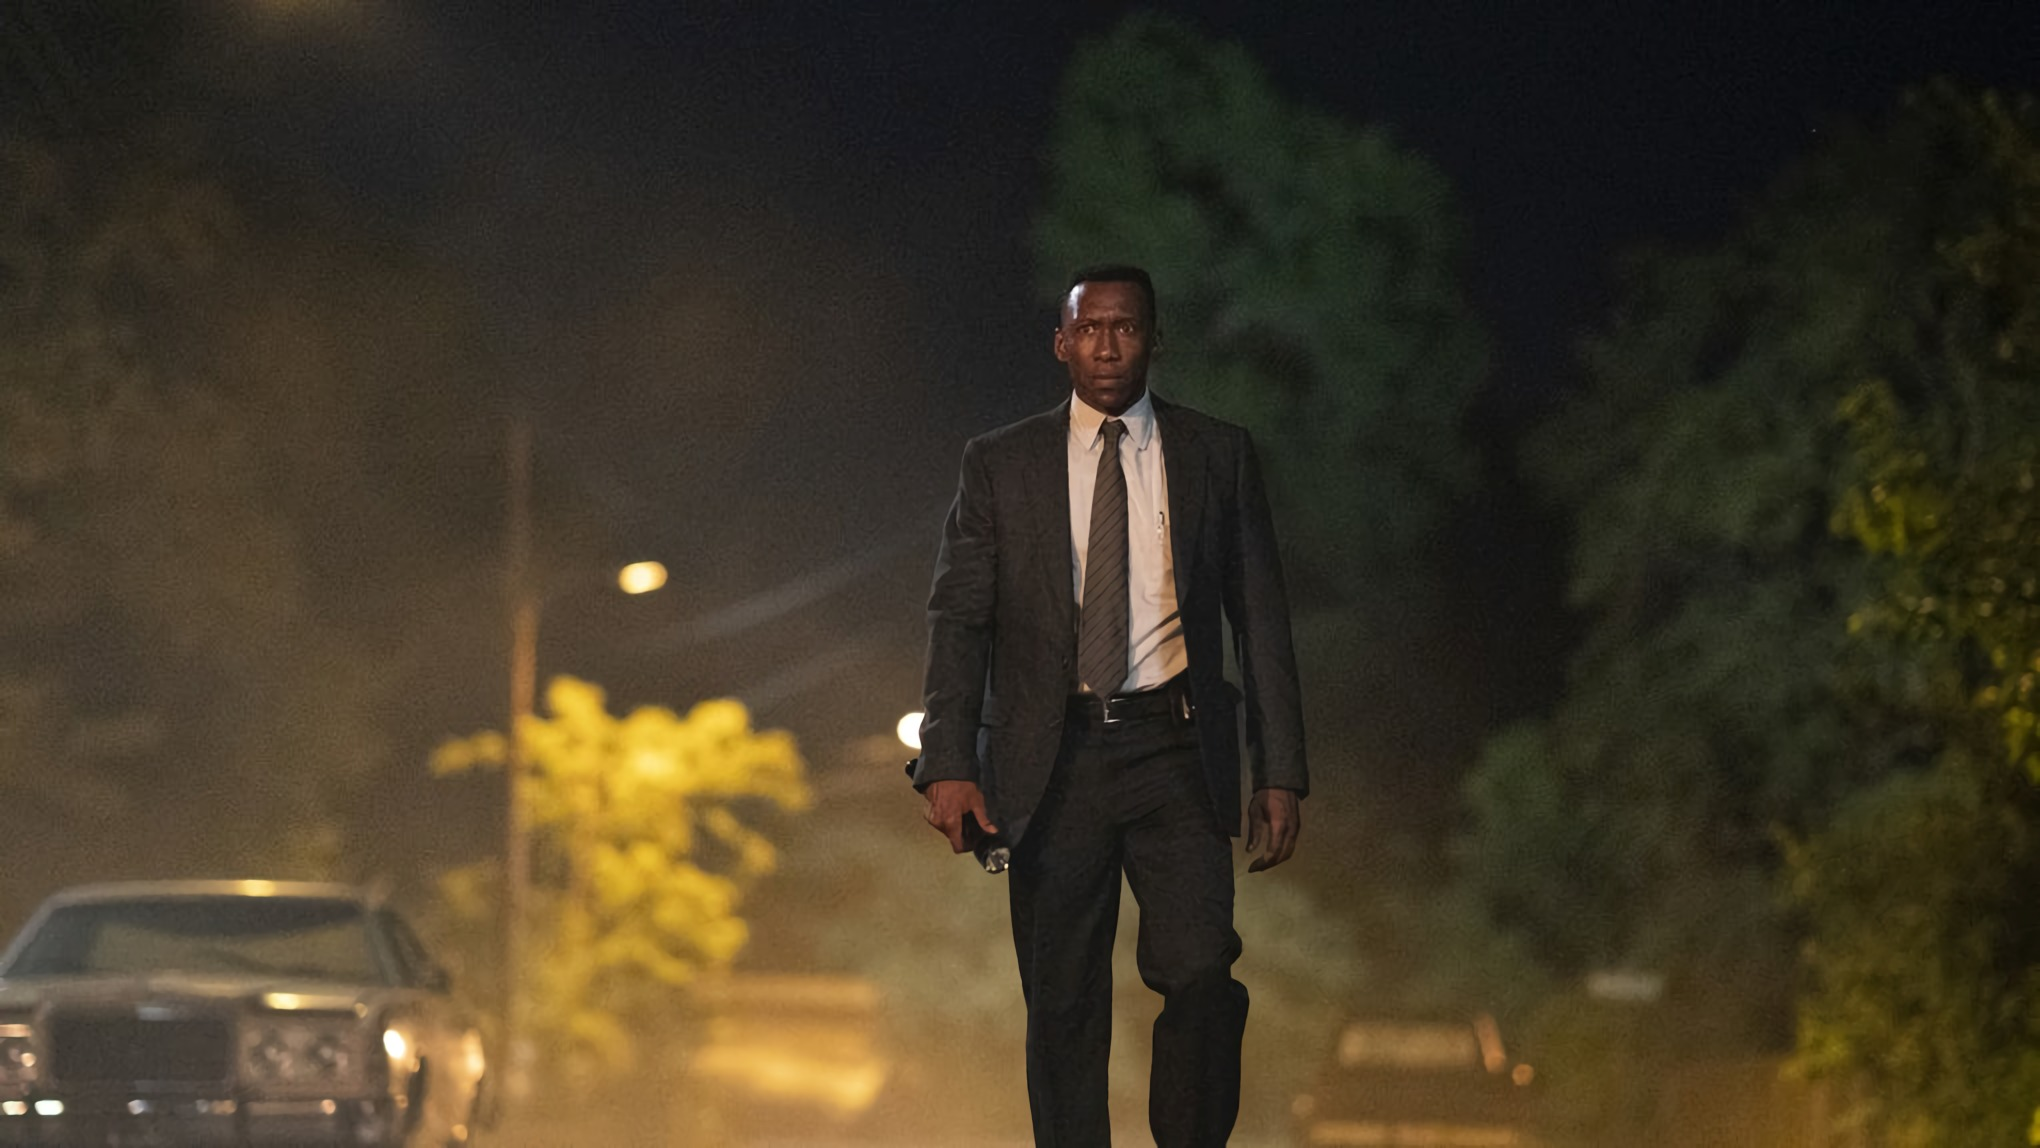 True Detective: Season 3, Episode 7 'The Final Country' review